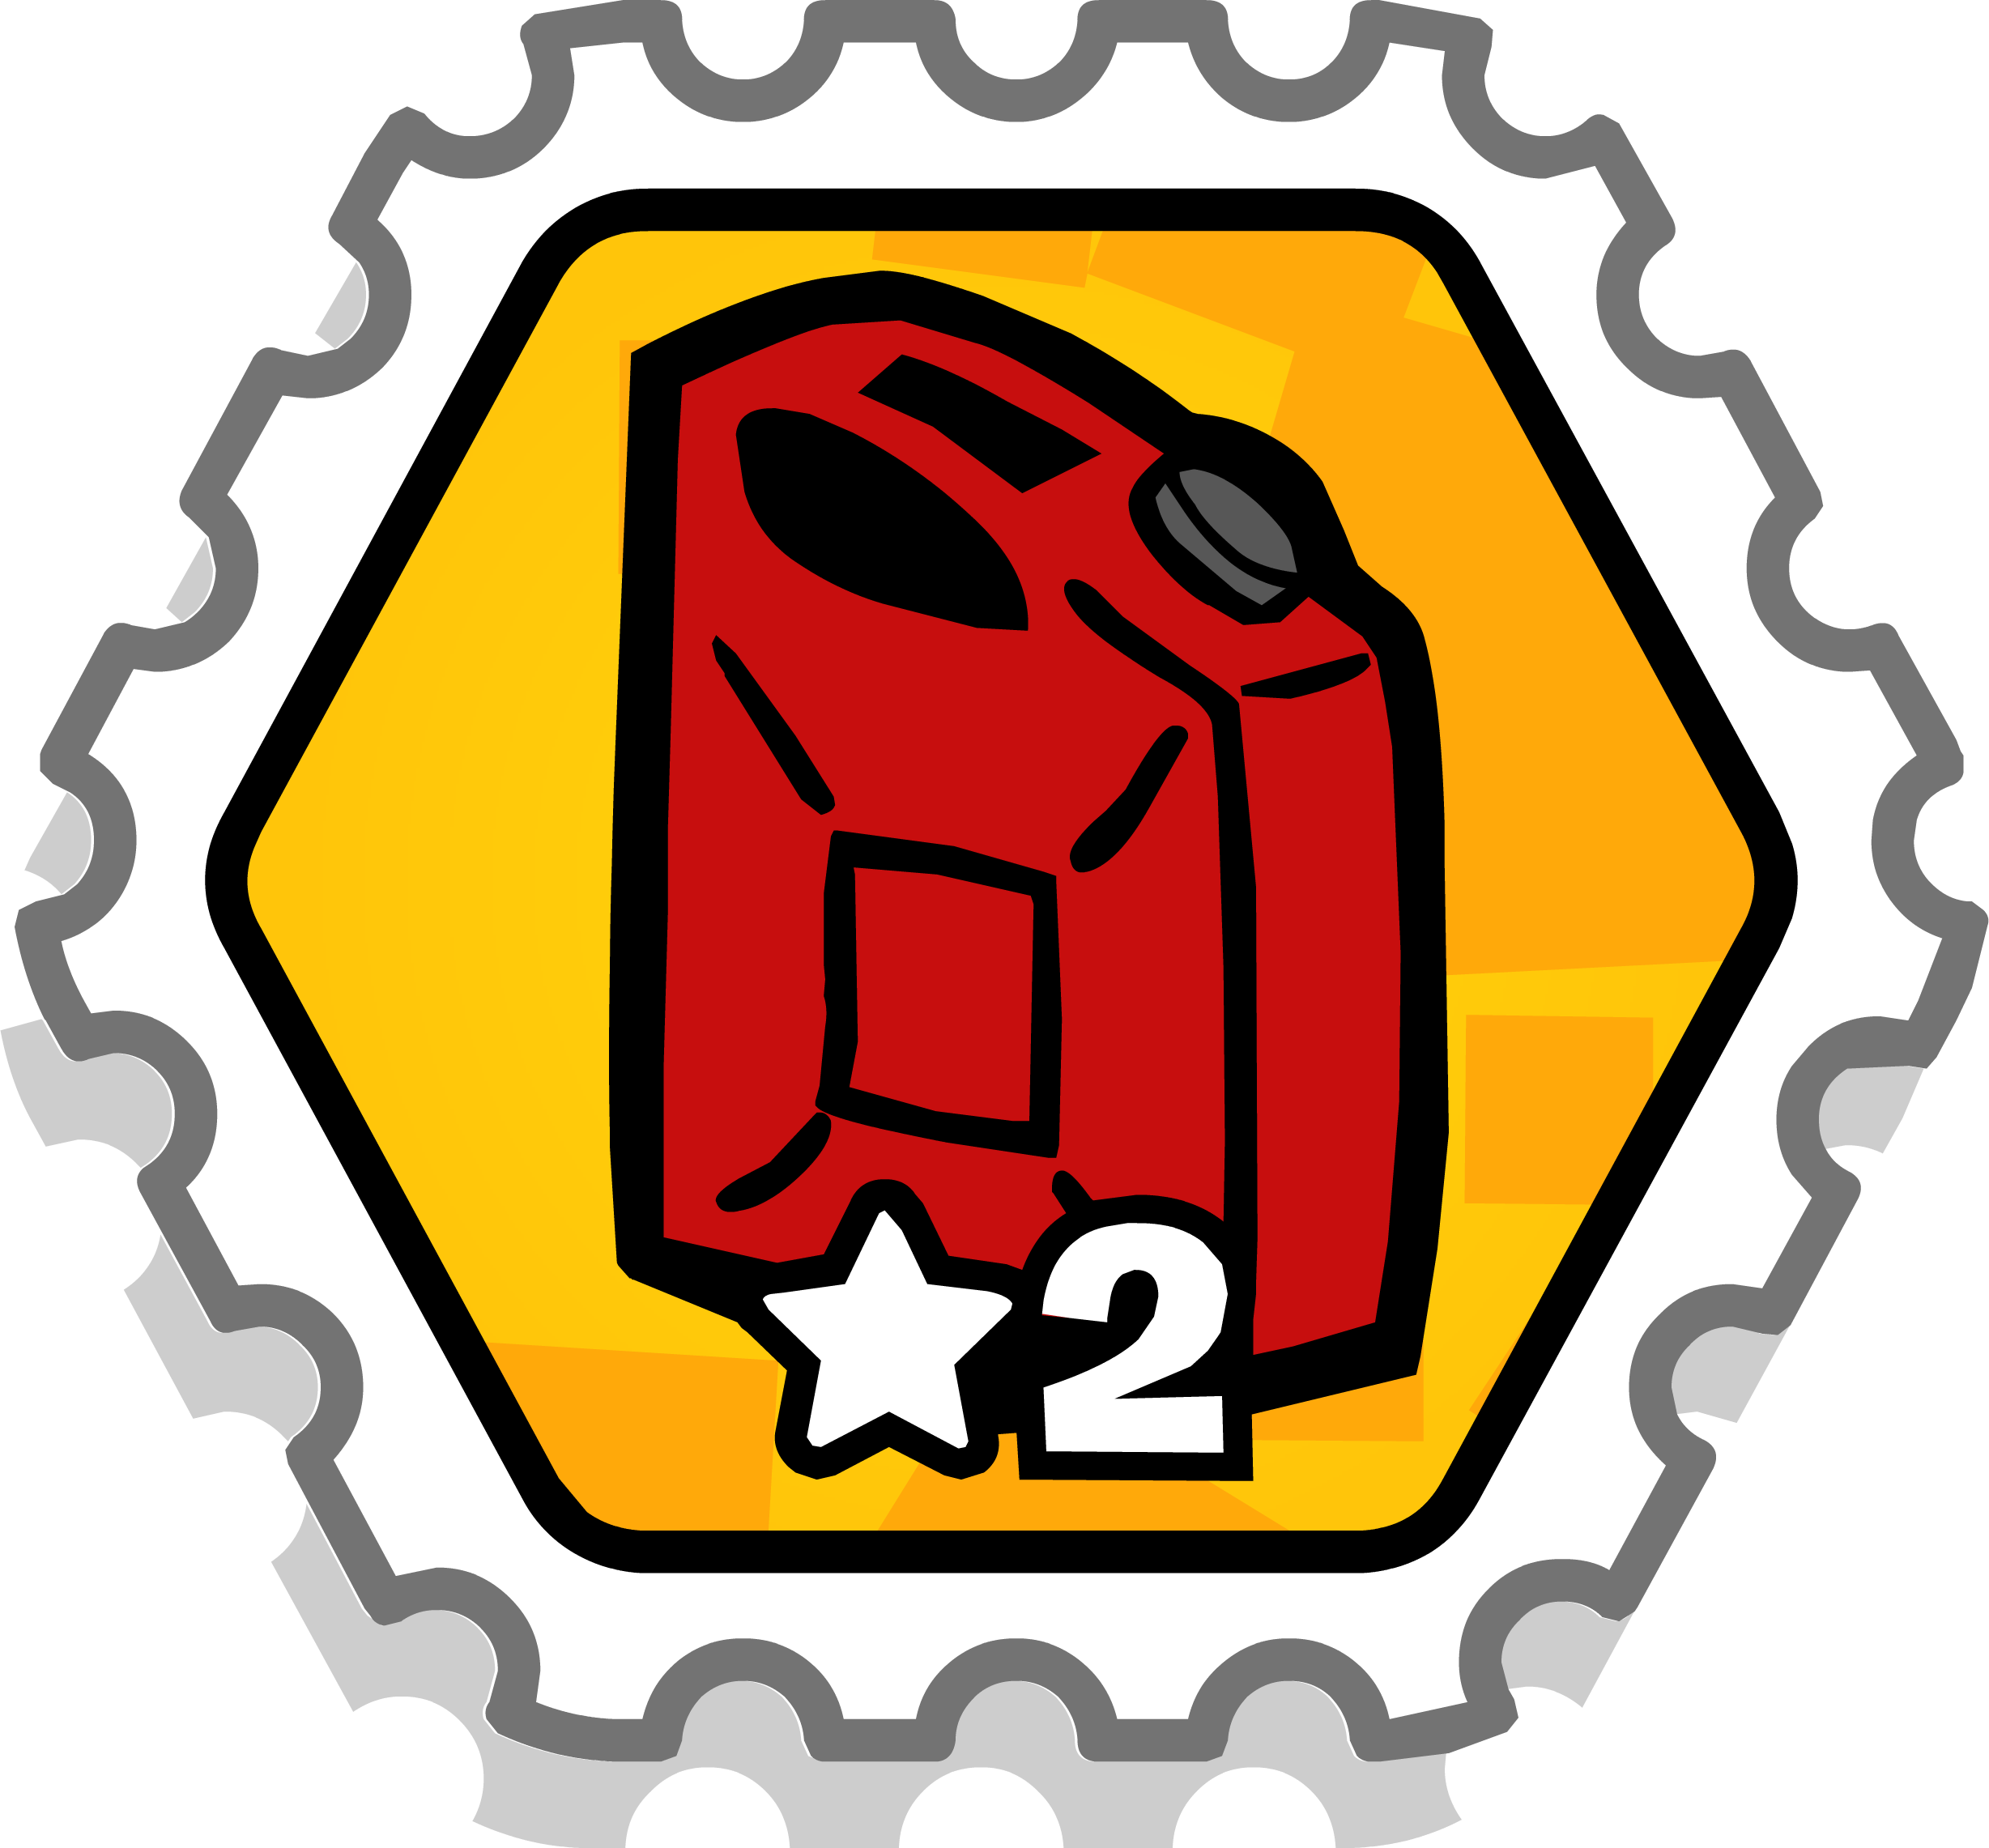 File:FuelRank2stamp.png